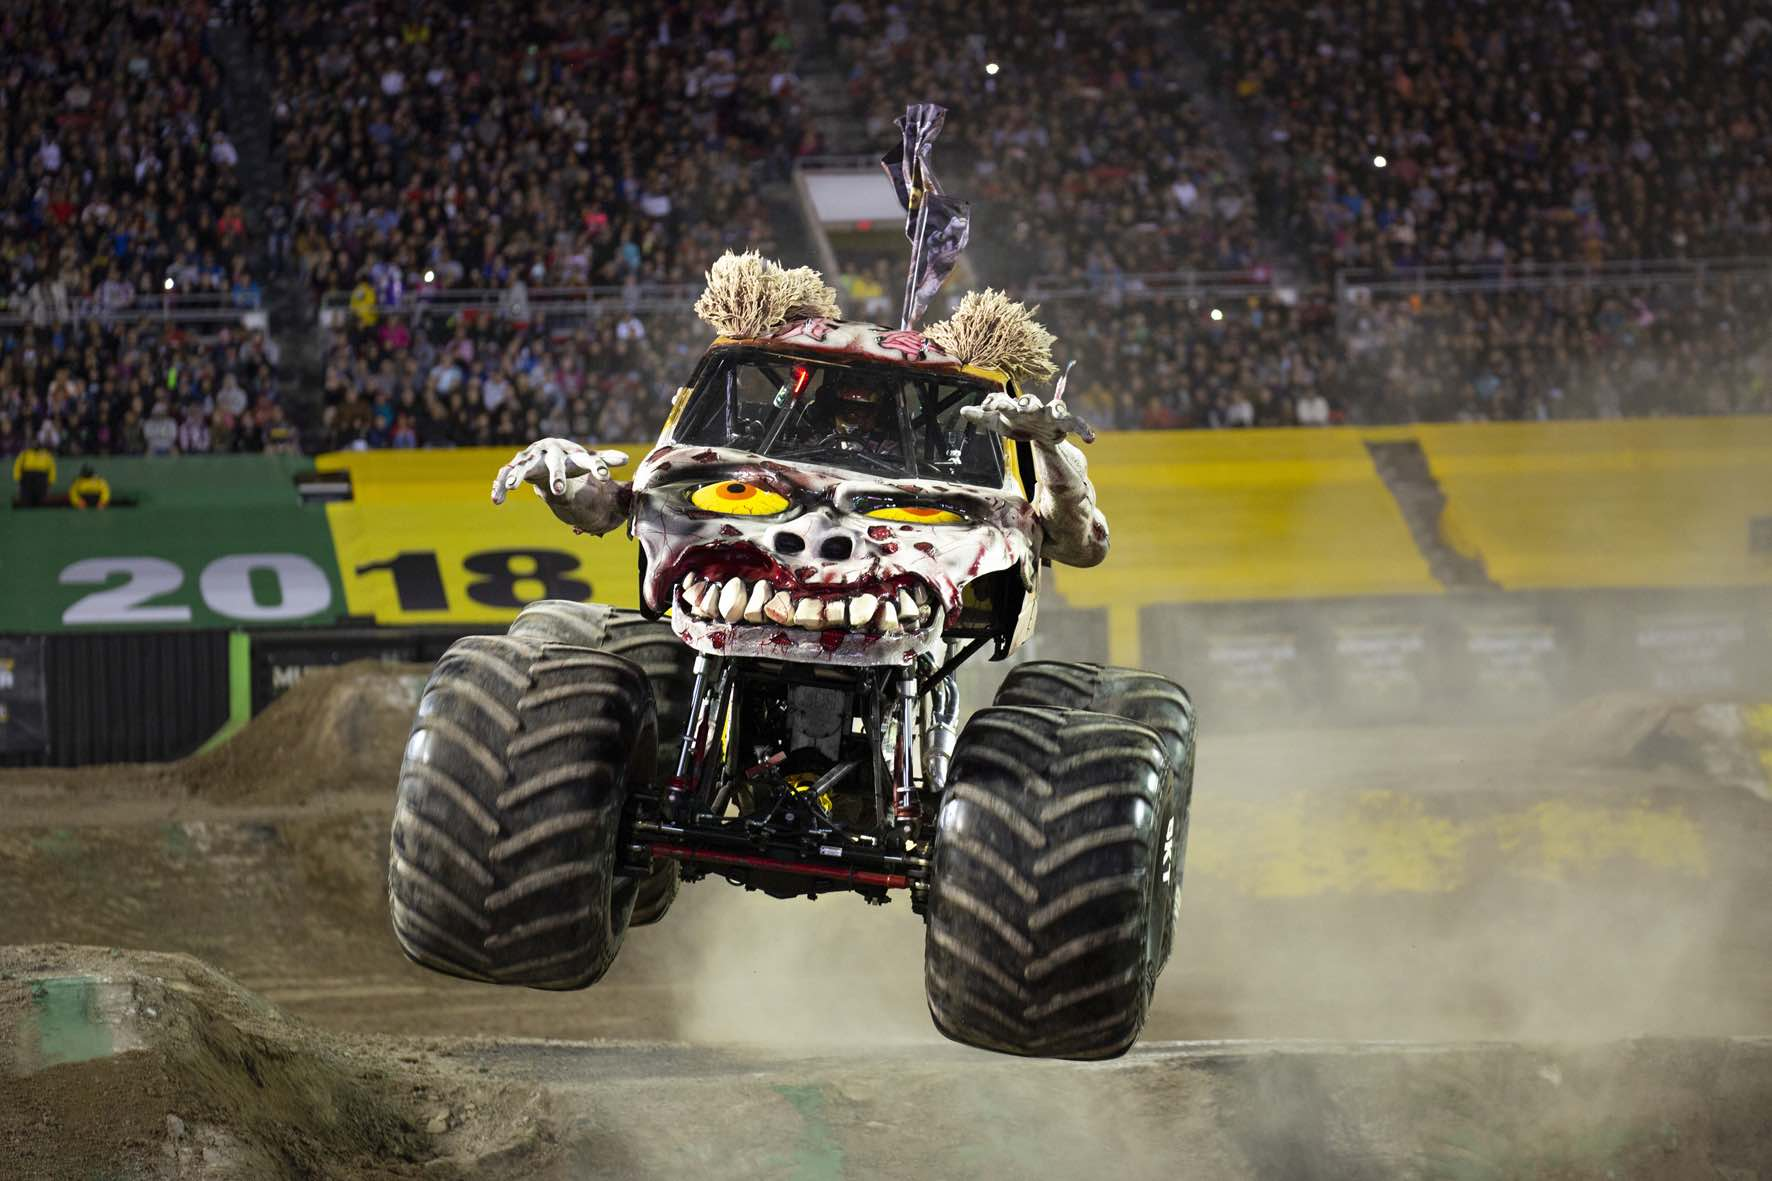 The Zombie Monster Truck is set to perform at Monster Jam in South Africa